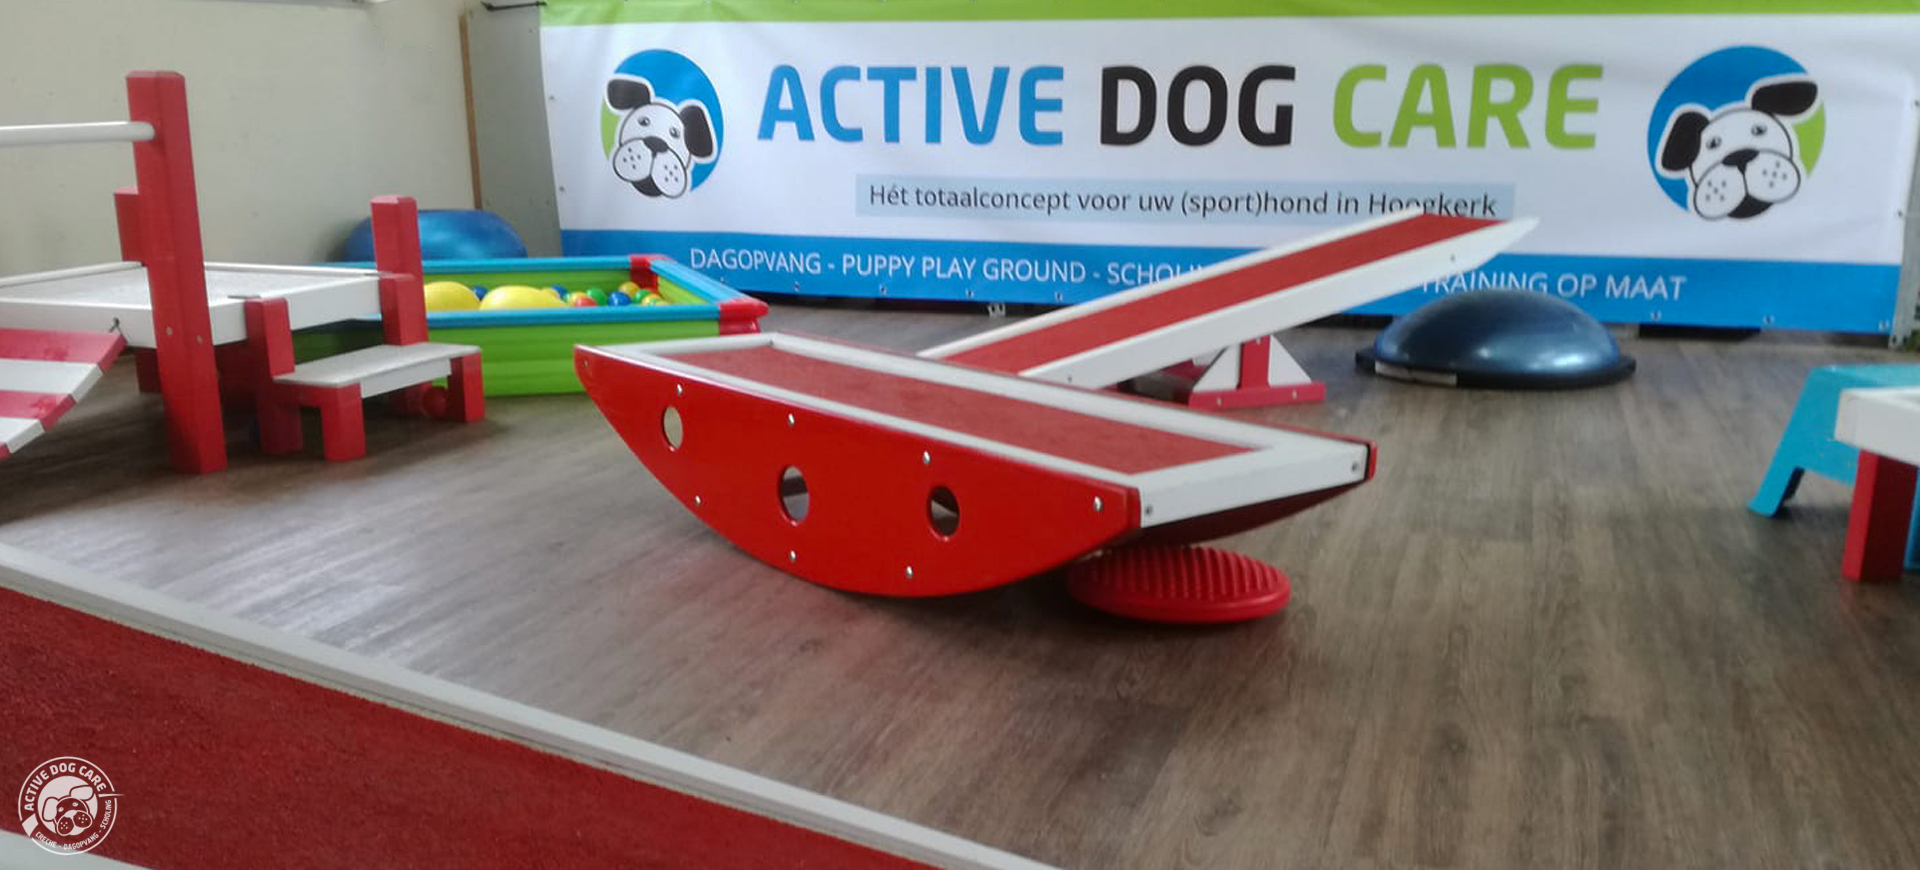 Puppy Play Ground in Groningen